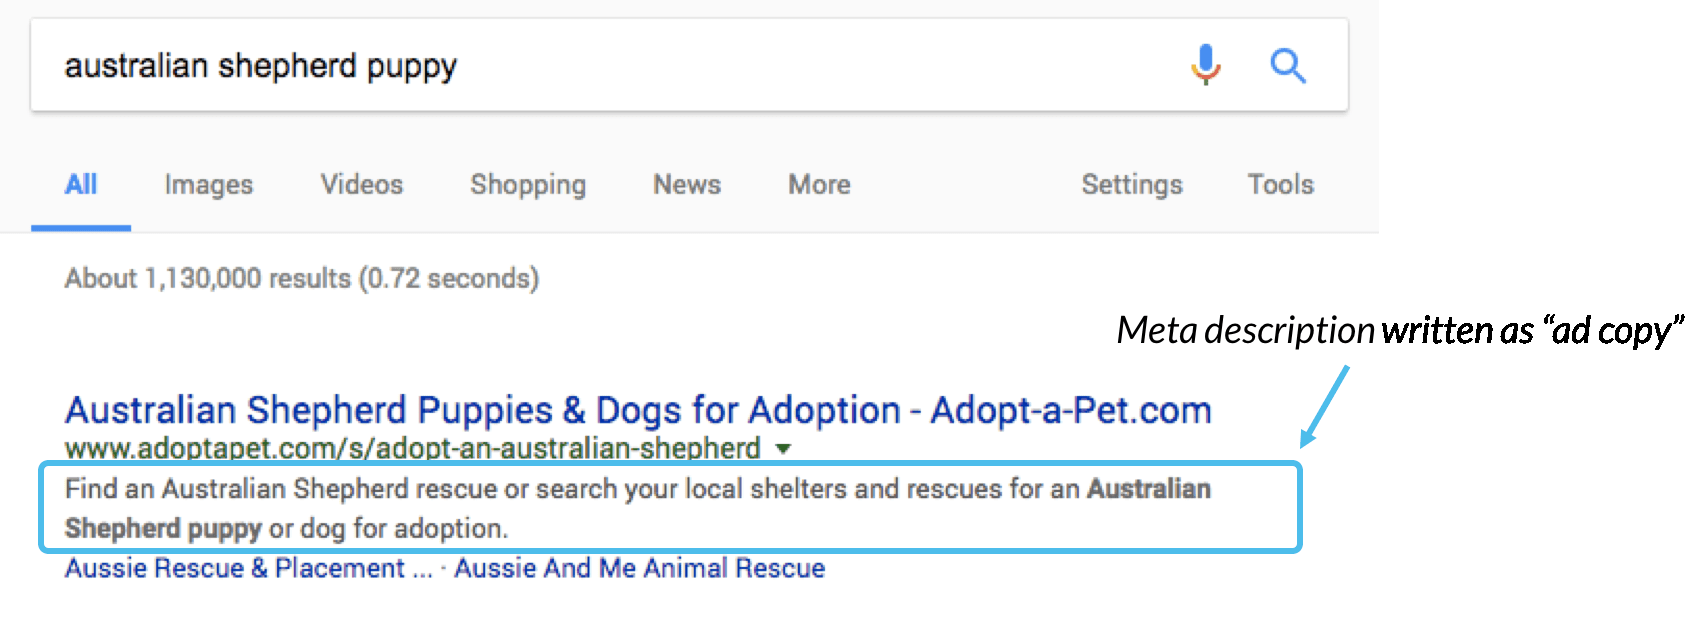 Meta Description written as ad copy